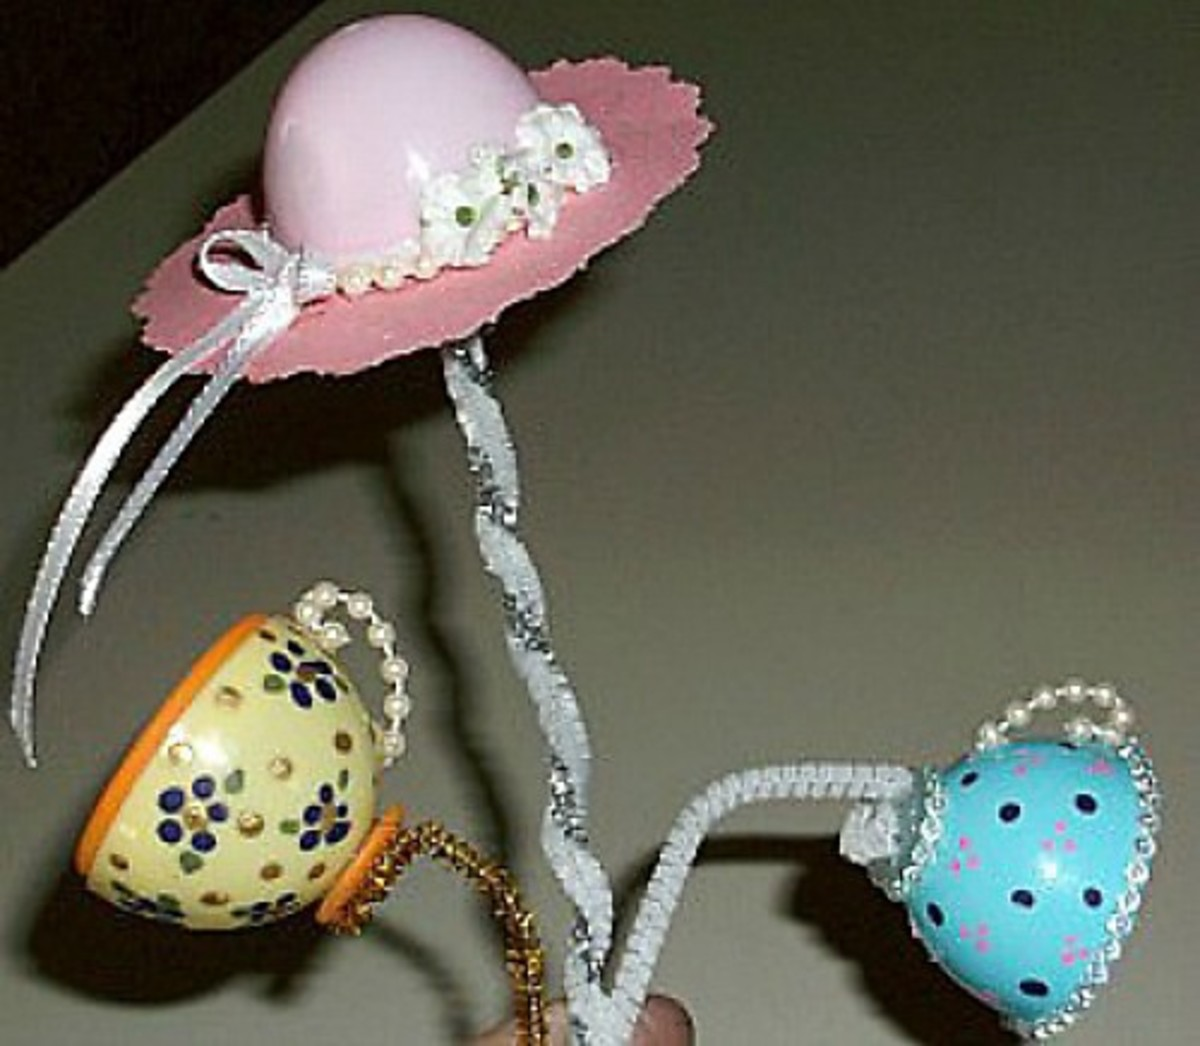 How To Make Teacups And Hats Out Of Plastic Eggs Feltmagnet